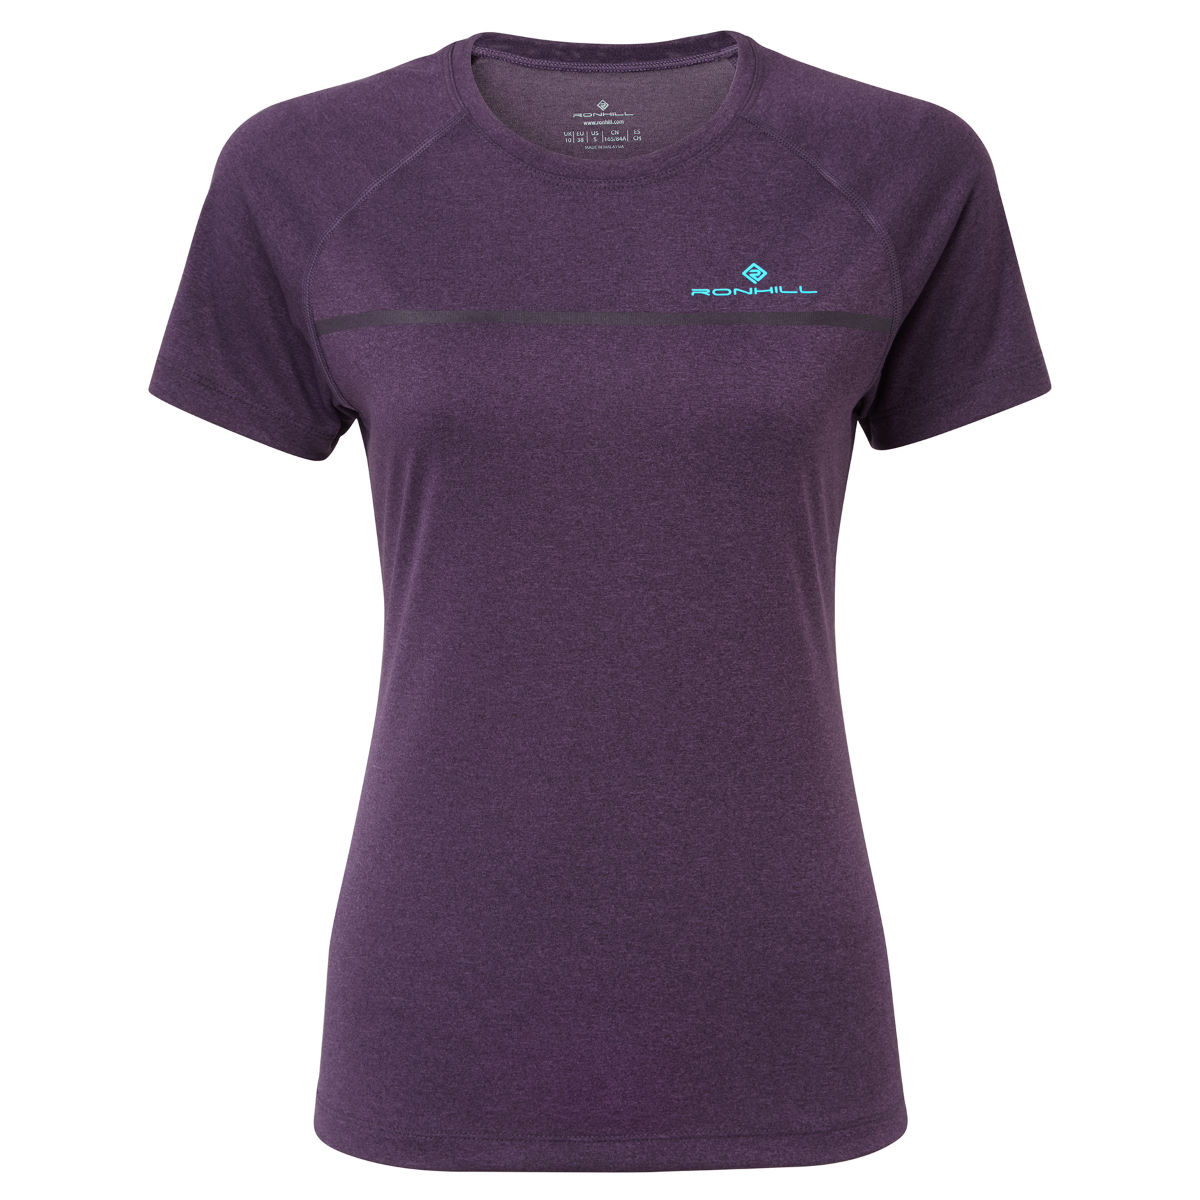 Ronhill Ronhill Womens Everyday S/S Tee   Short Sleeve Running Tops